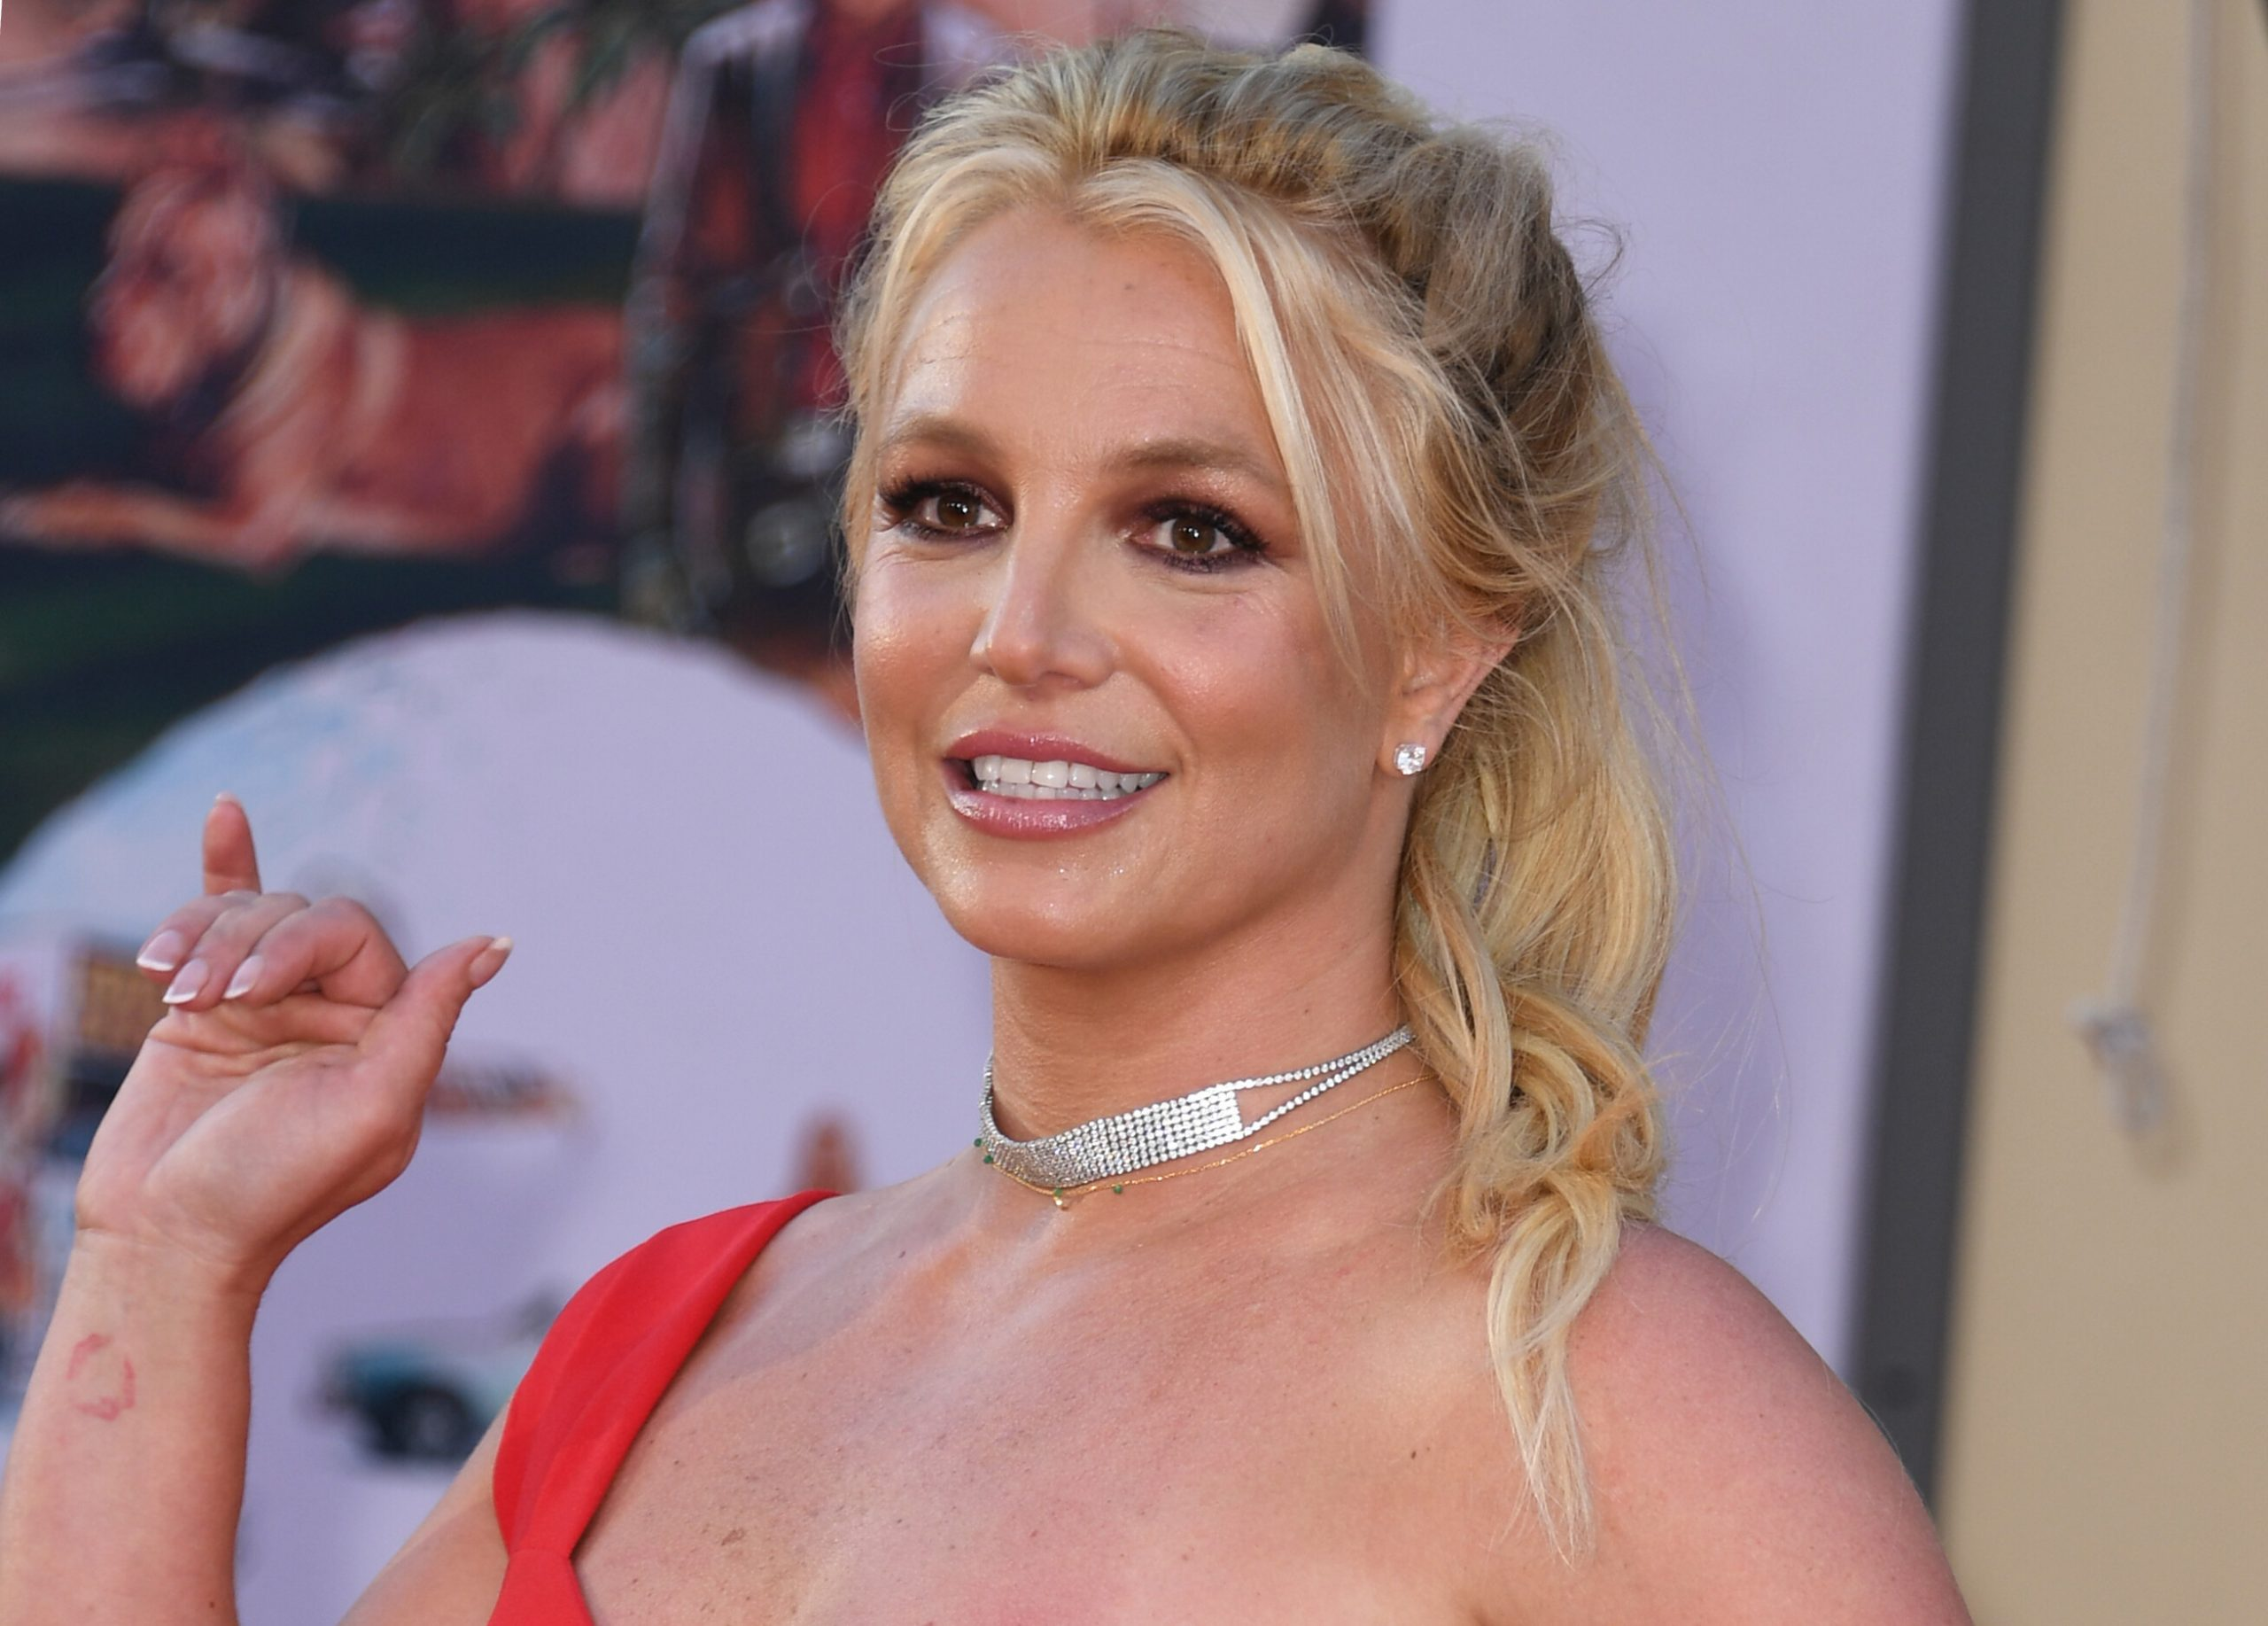 <i>VALERIE MACON/AFP/Getty Images</i><br/>Hollywood stars are showing support for singer Britney Spears.